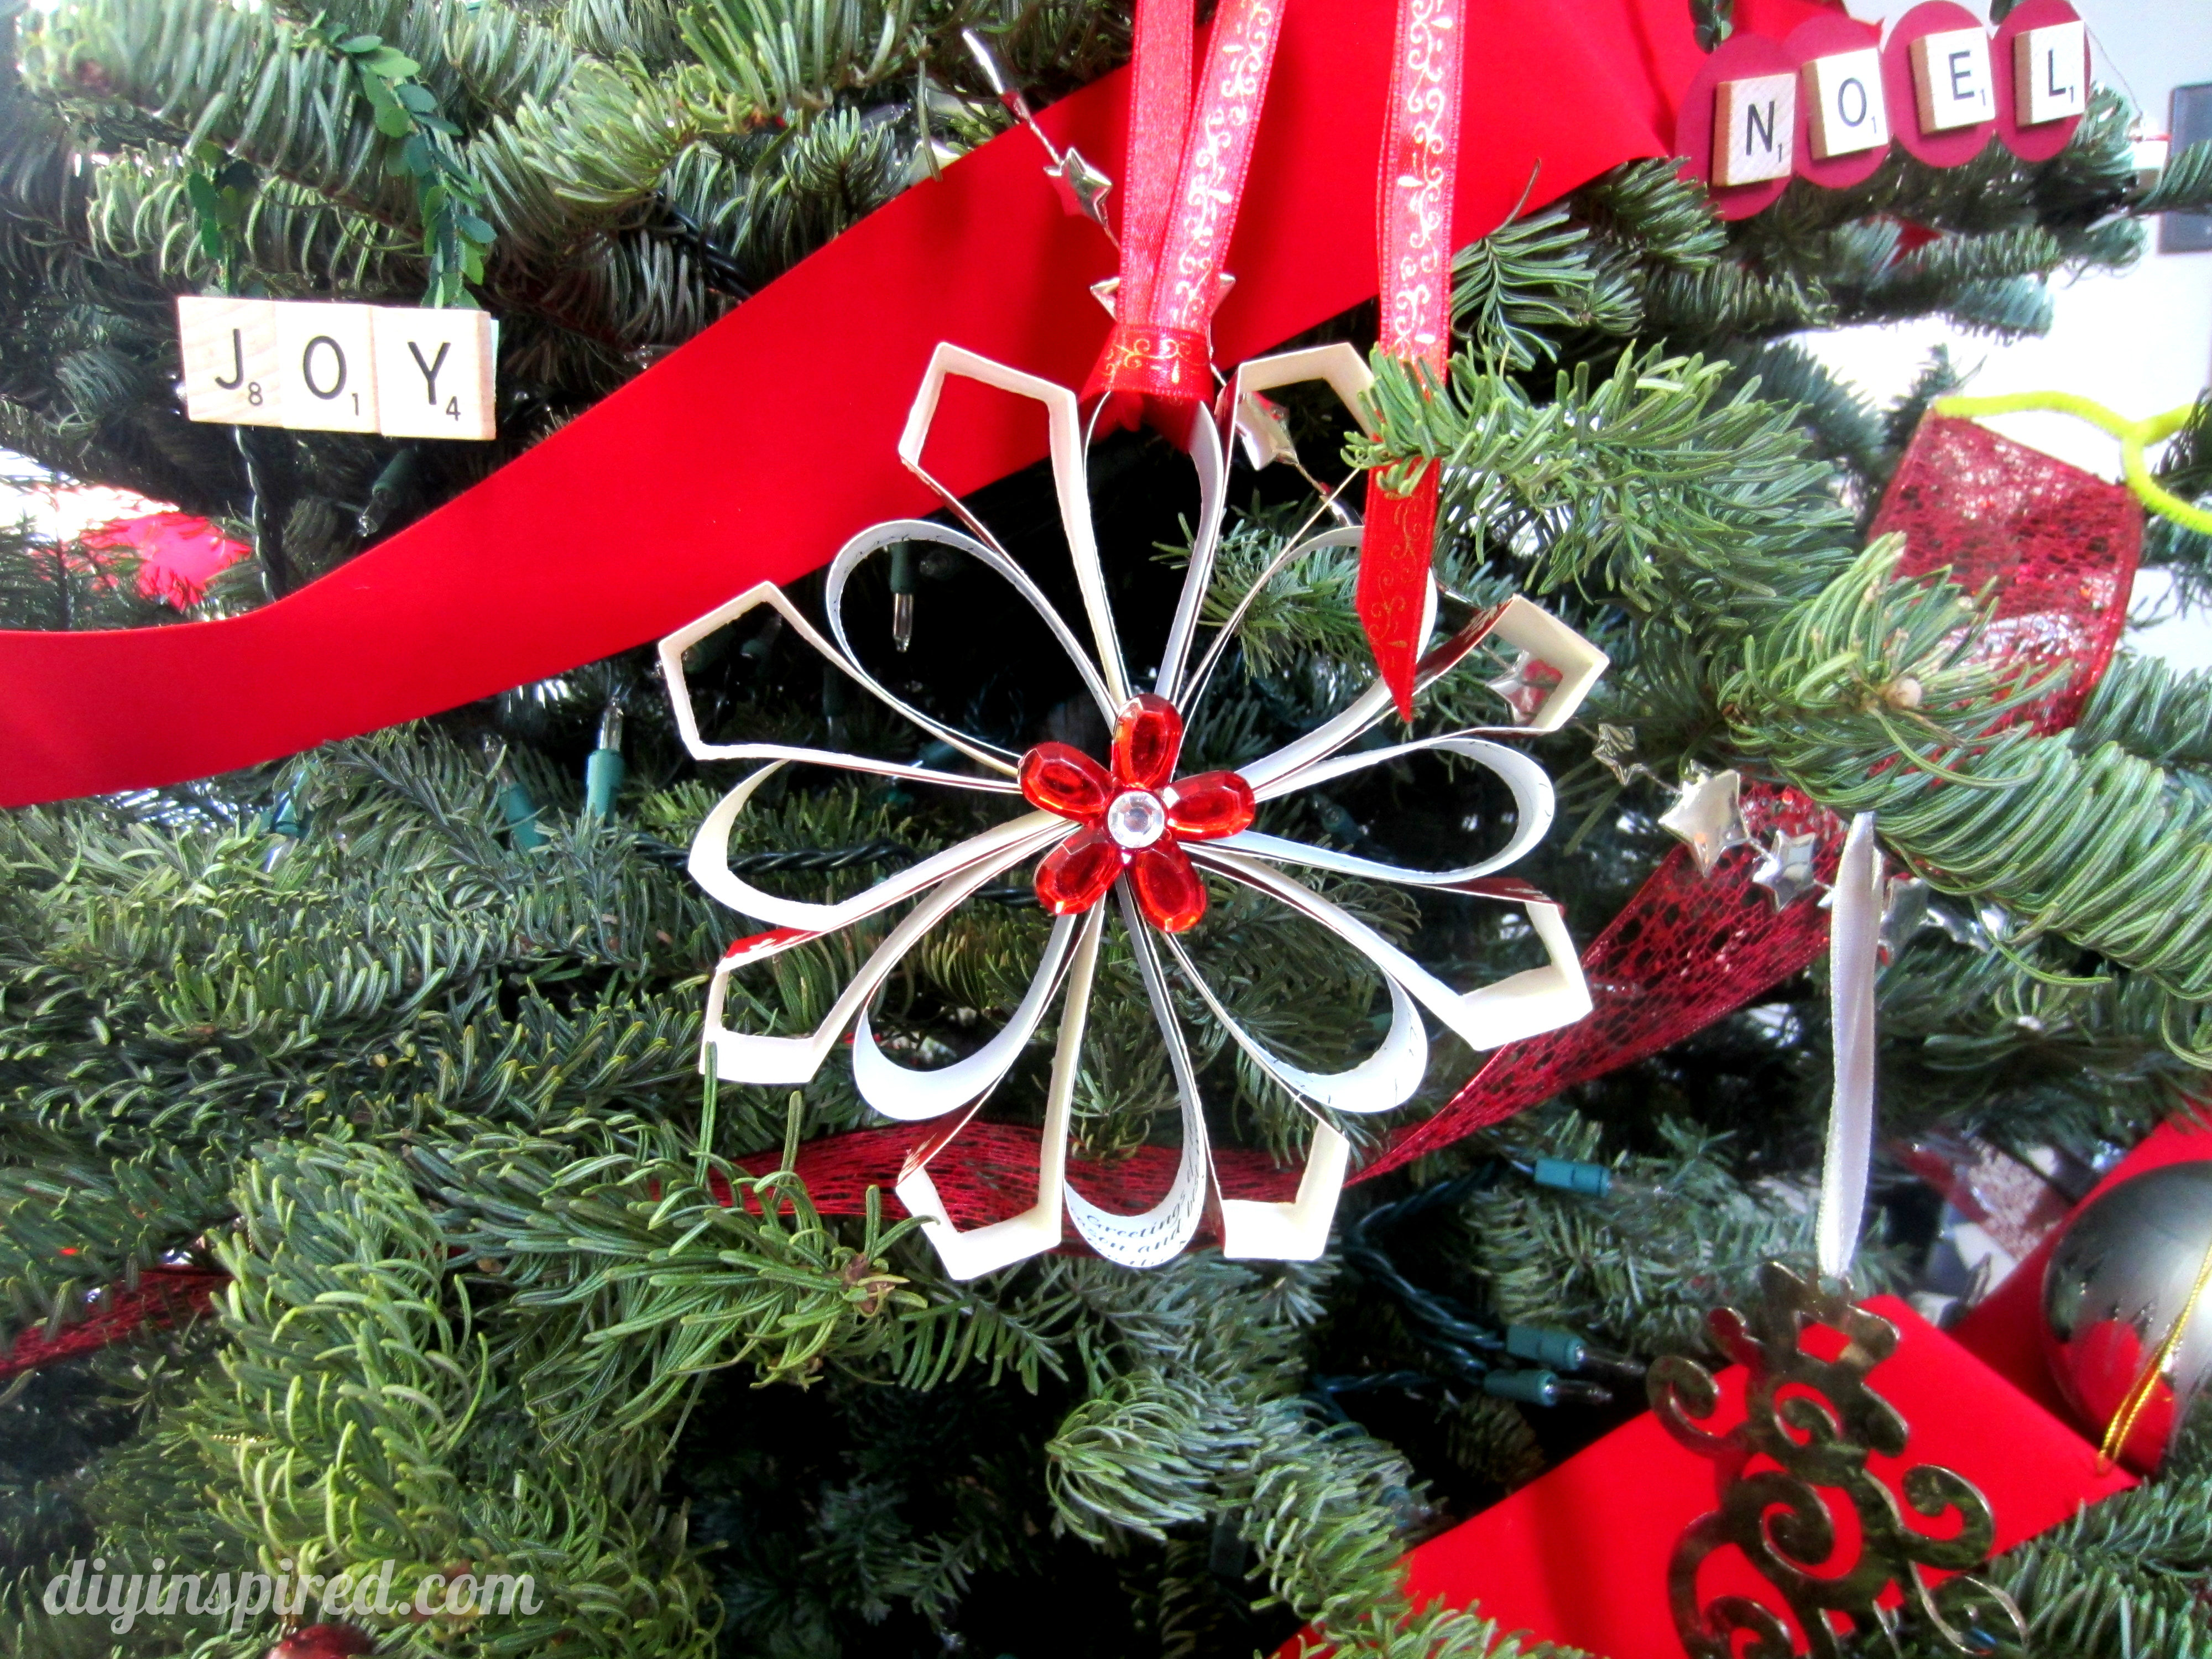 How to make a christmas decor out of recycled materials - Recycled Christmas Card Ornaments Diy Inspired